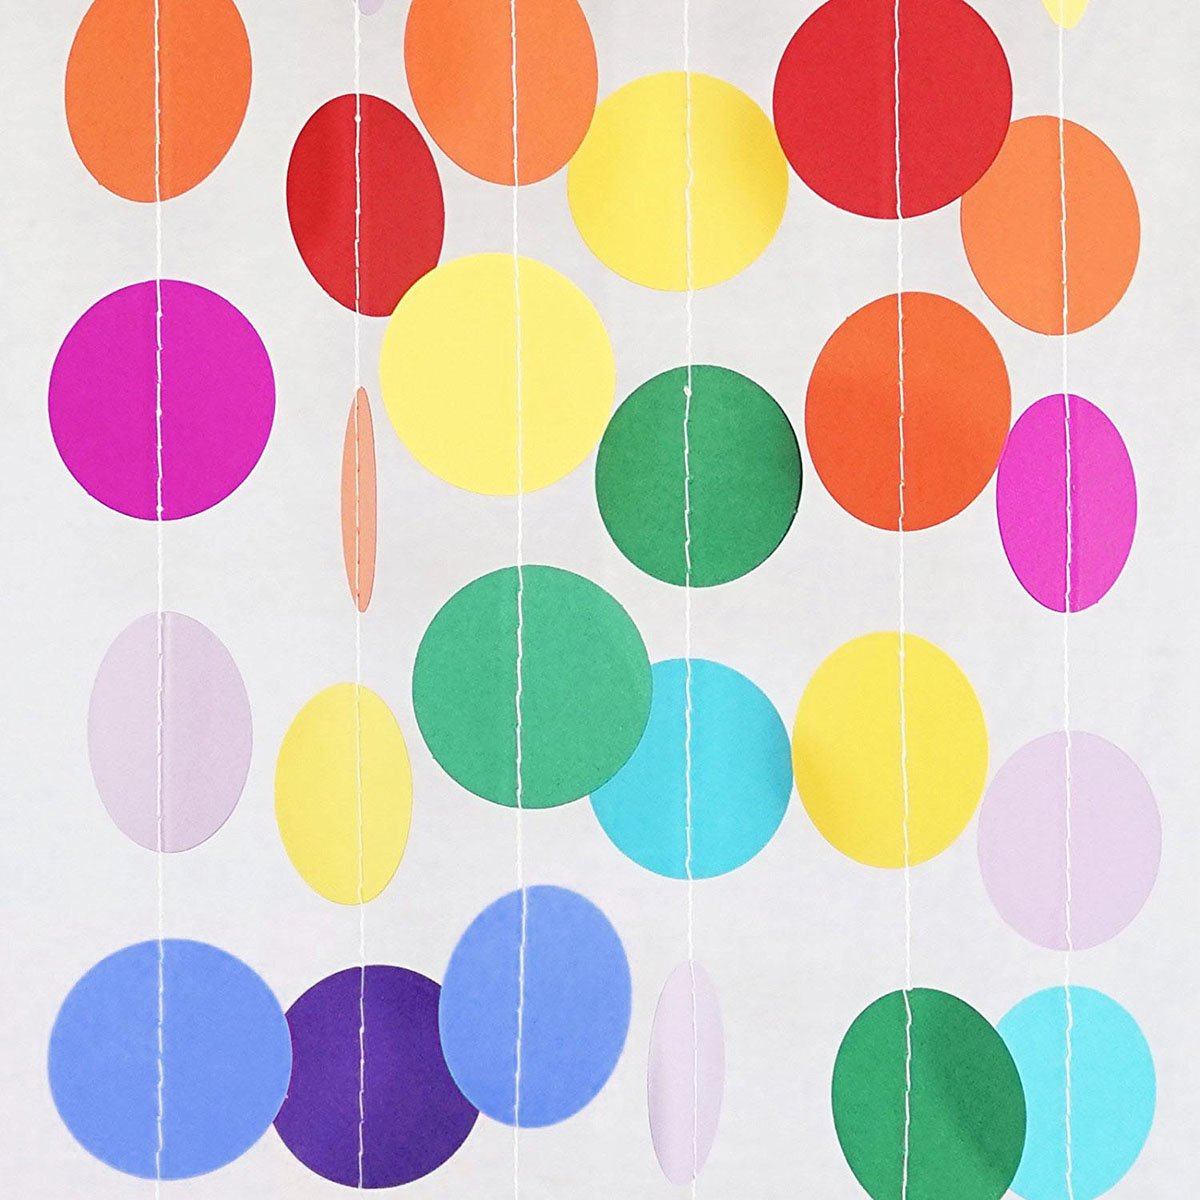 Ranpower 5 Pack 67ft Paper Circle Dots Garland Colorful Hanging Banner Paper for Birthday Party Streamers Wedding Decor Each Pack